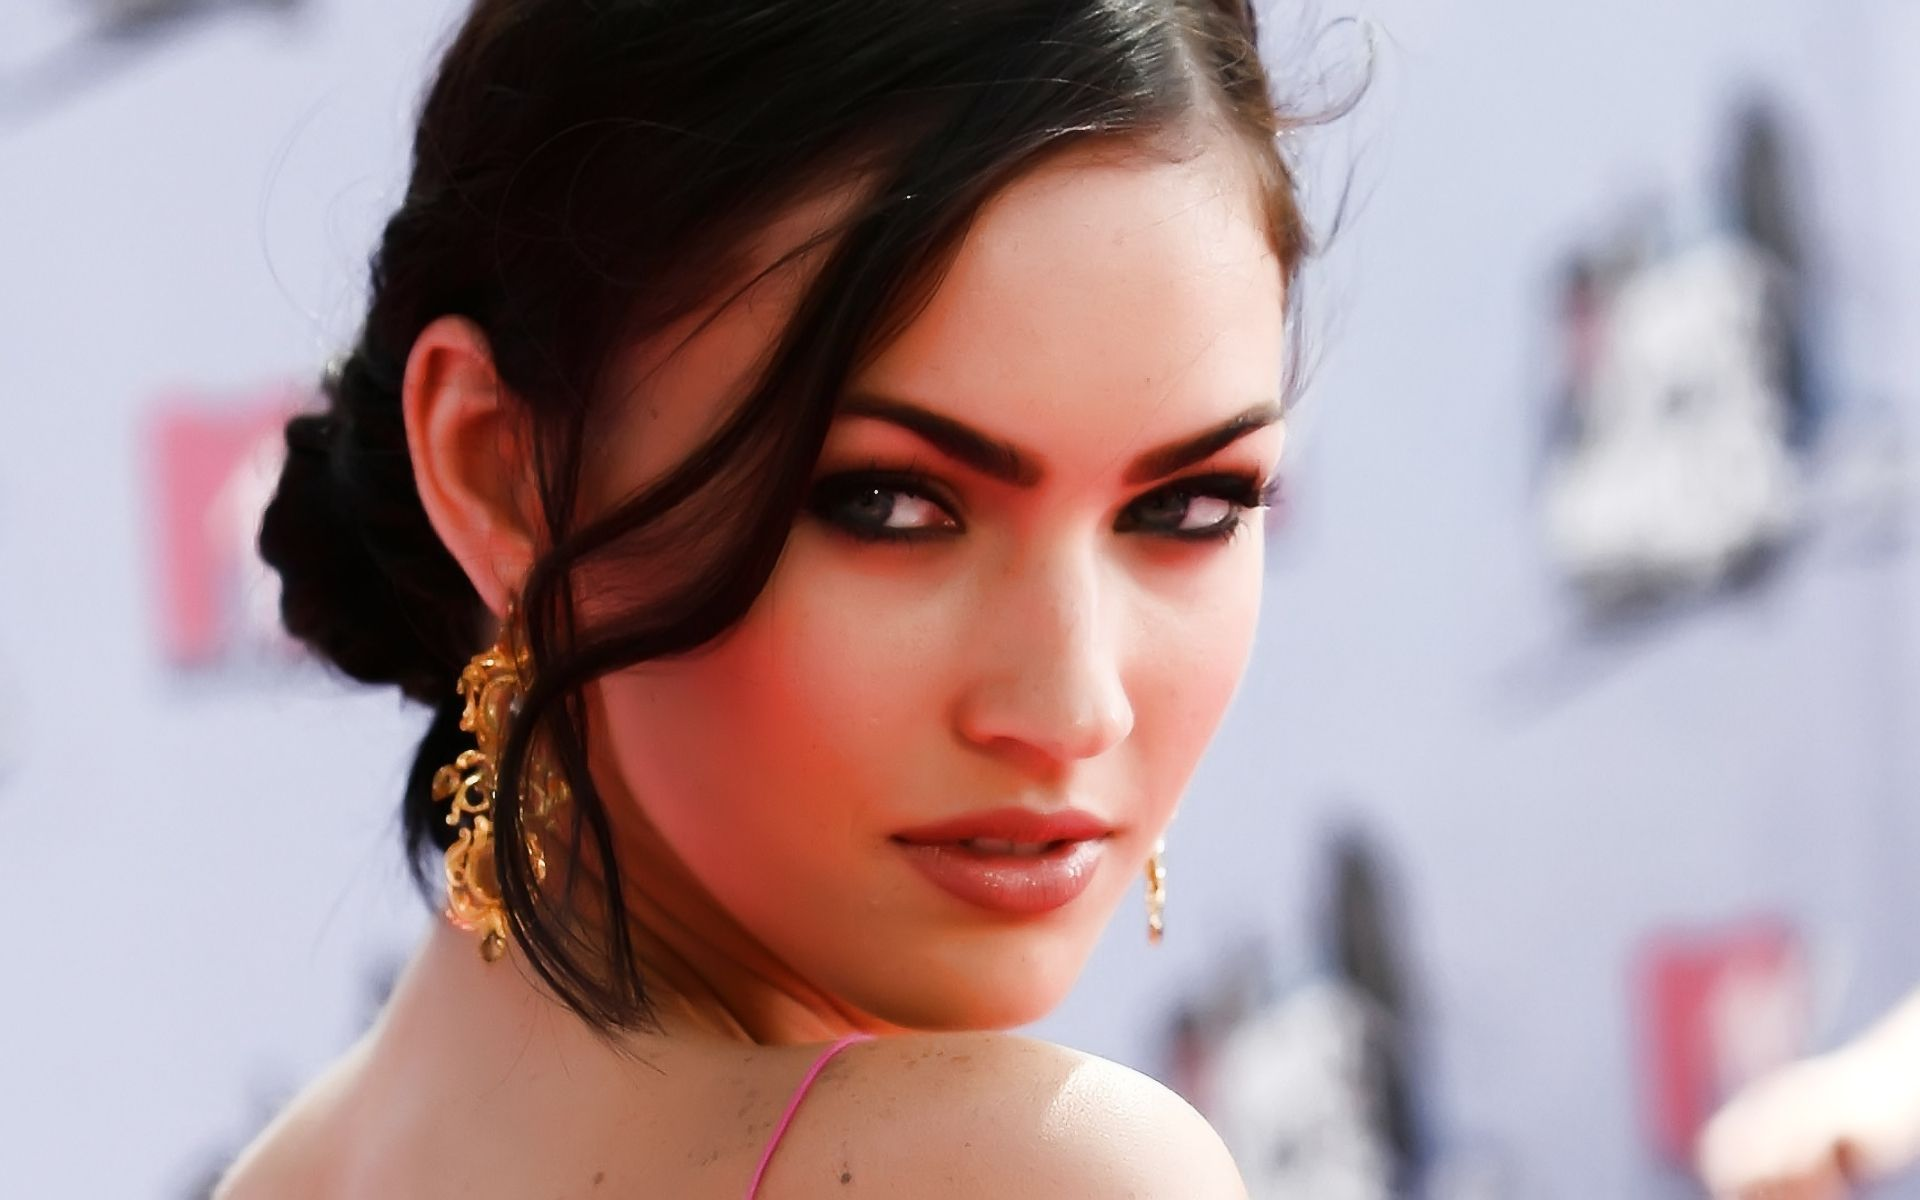 megan fox hd wallpaper 1920×1200 megan fox hd wallpapers (54